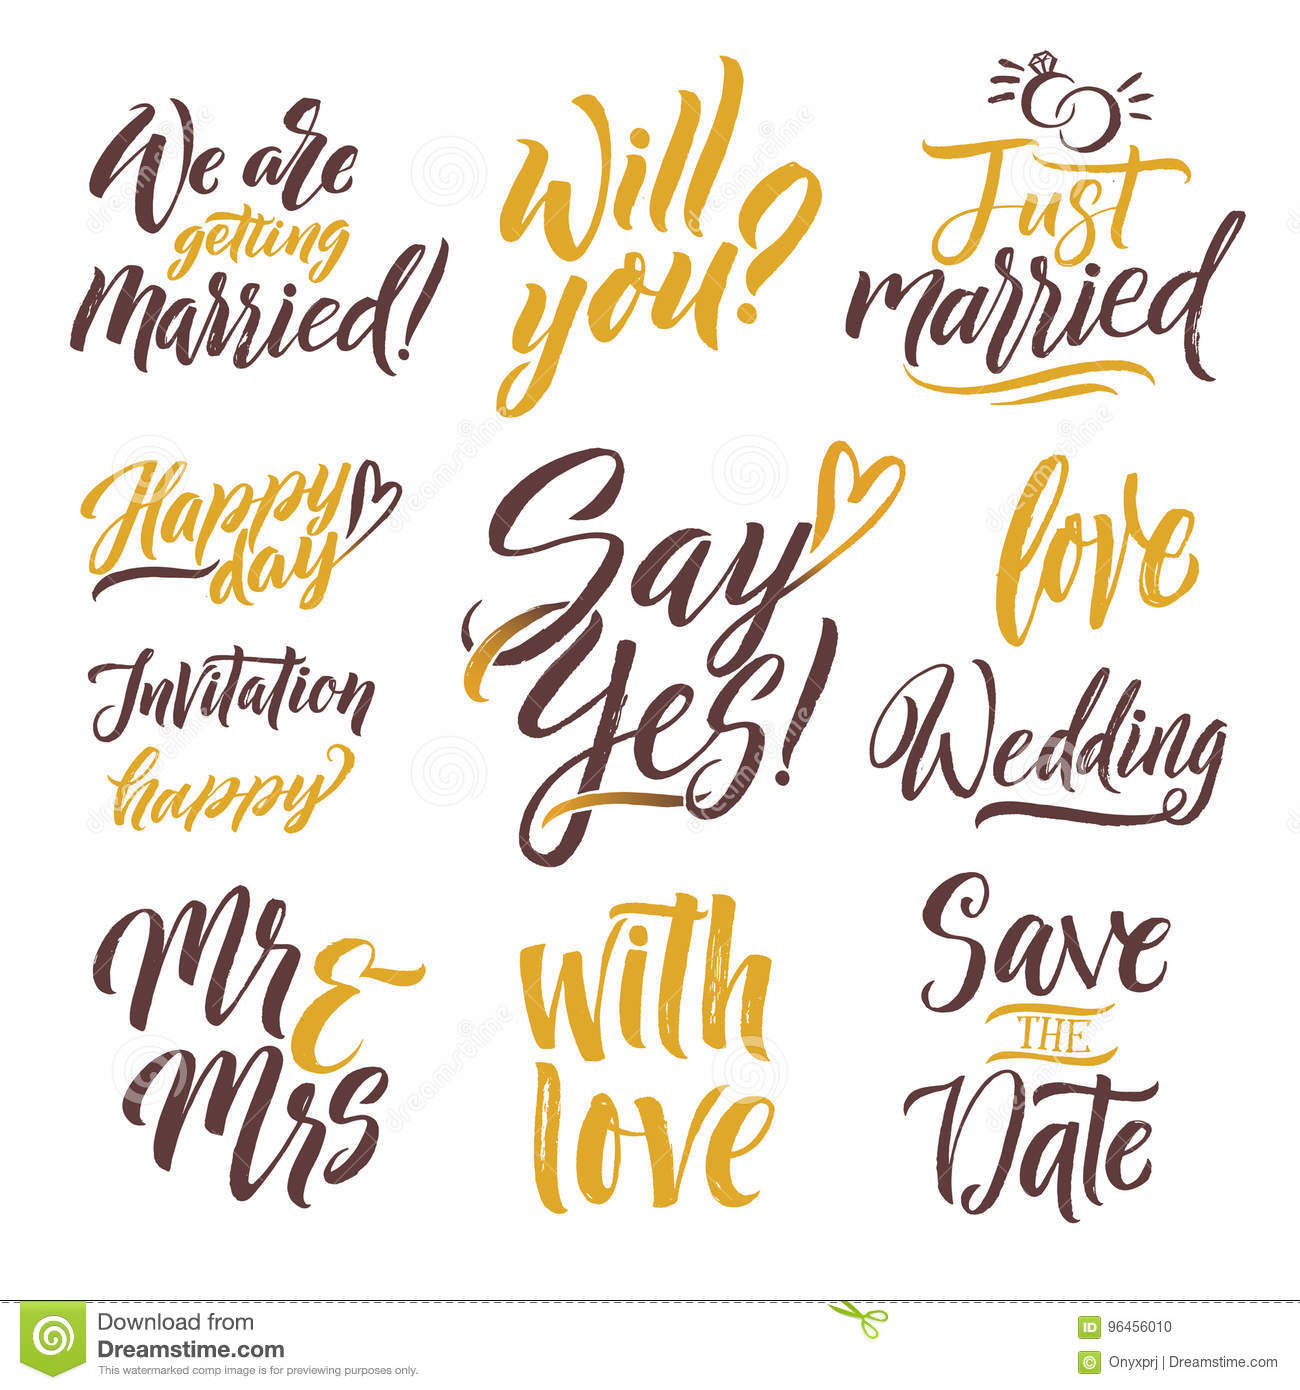 download save the date hand drawn letters lettering set with different words of invitation